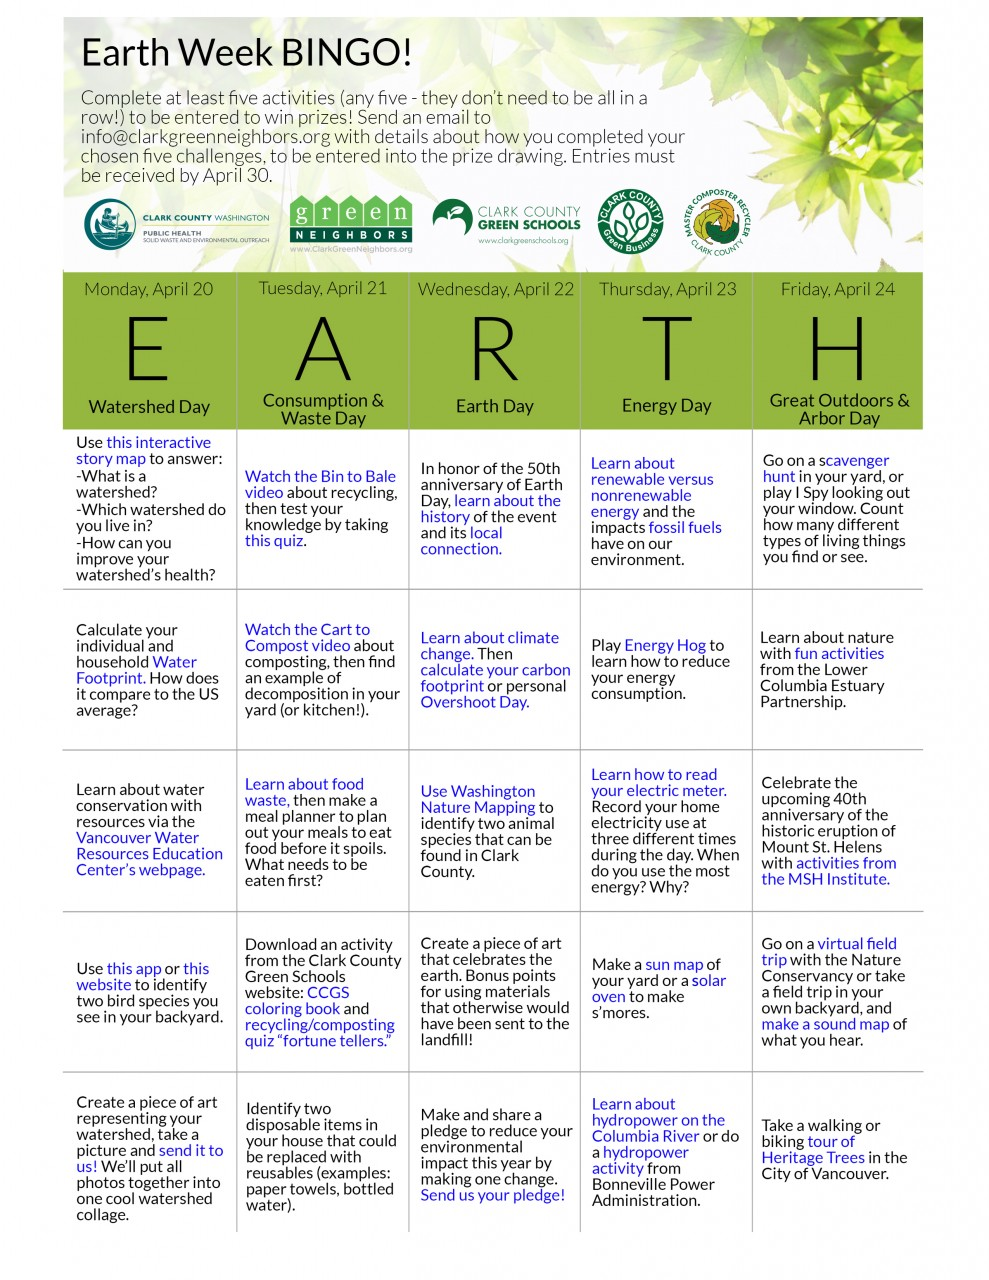 Join us for Earth Week Bingo!